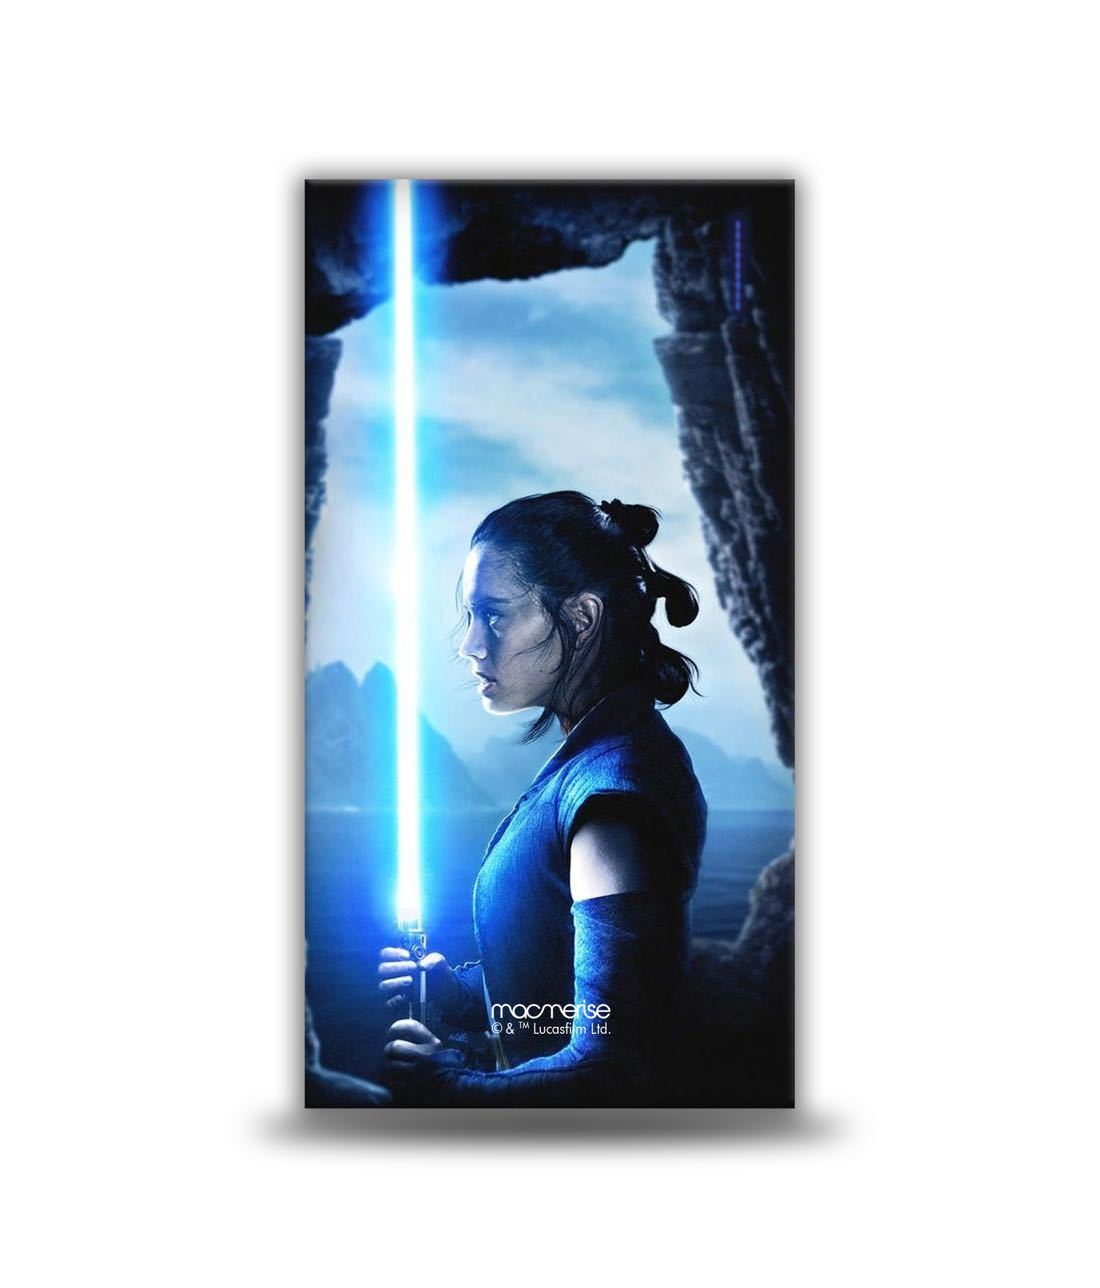 Blue Light Saber 4000 MAH Universal Powerbank by Macmerise